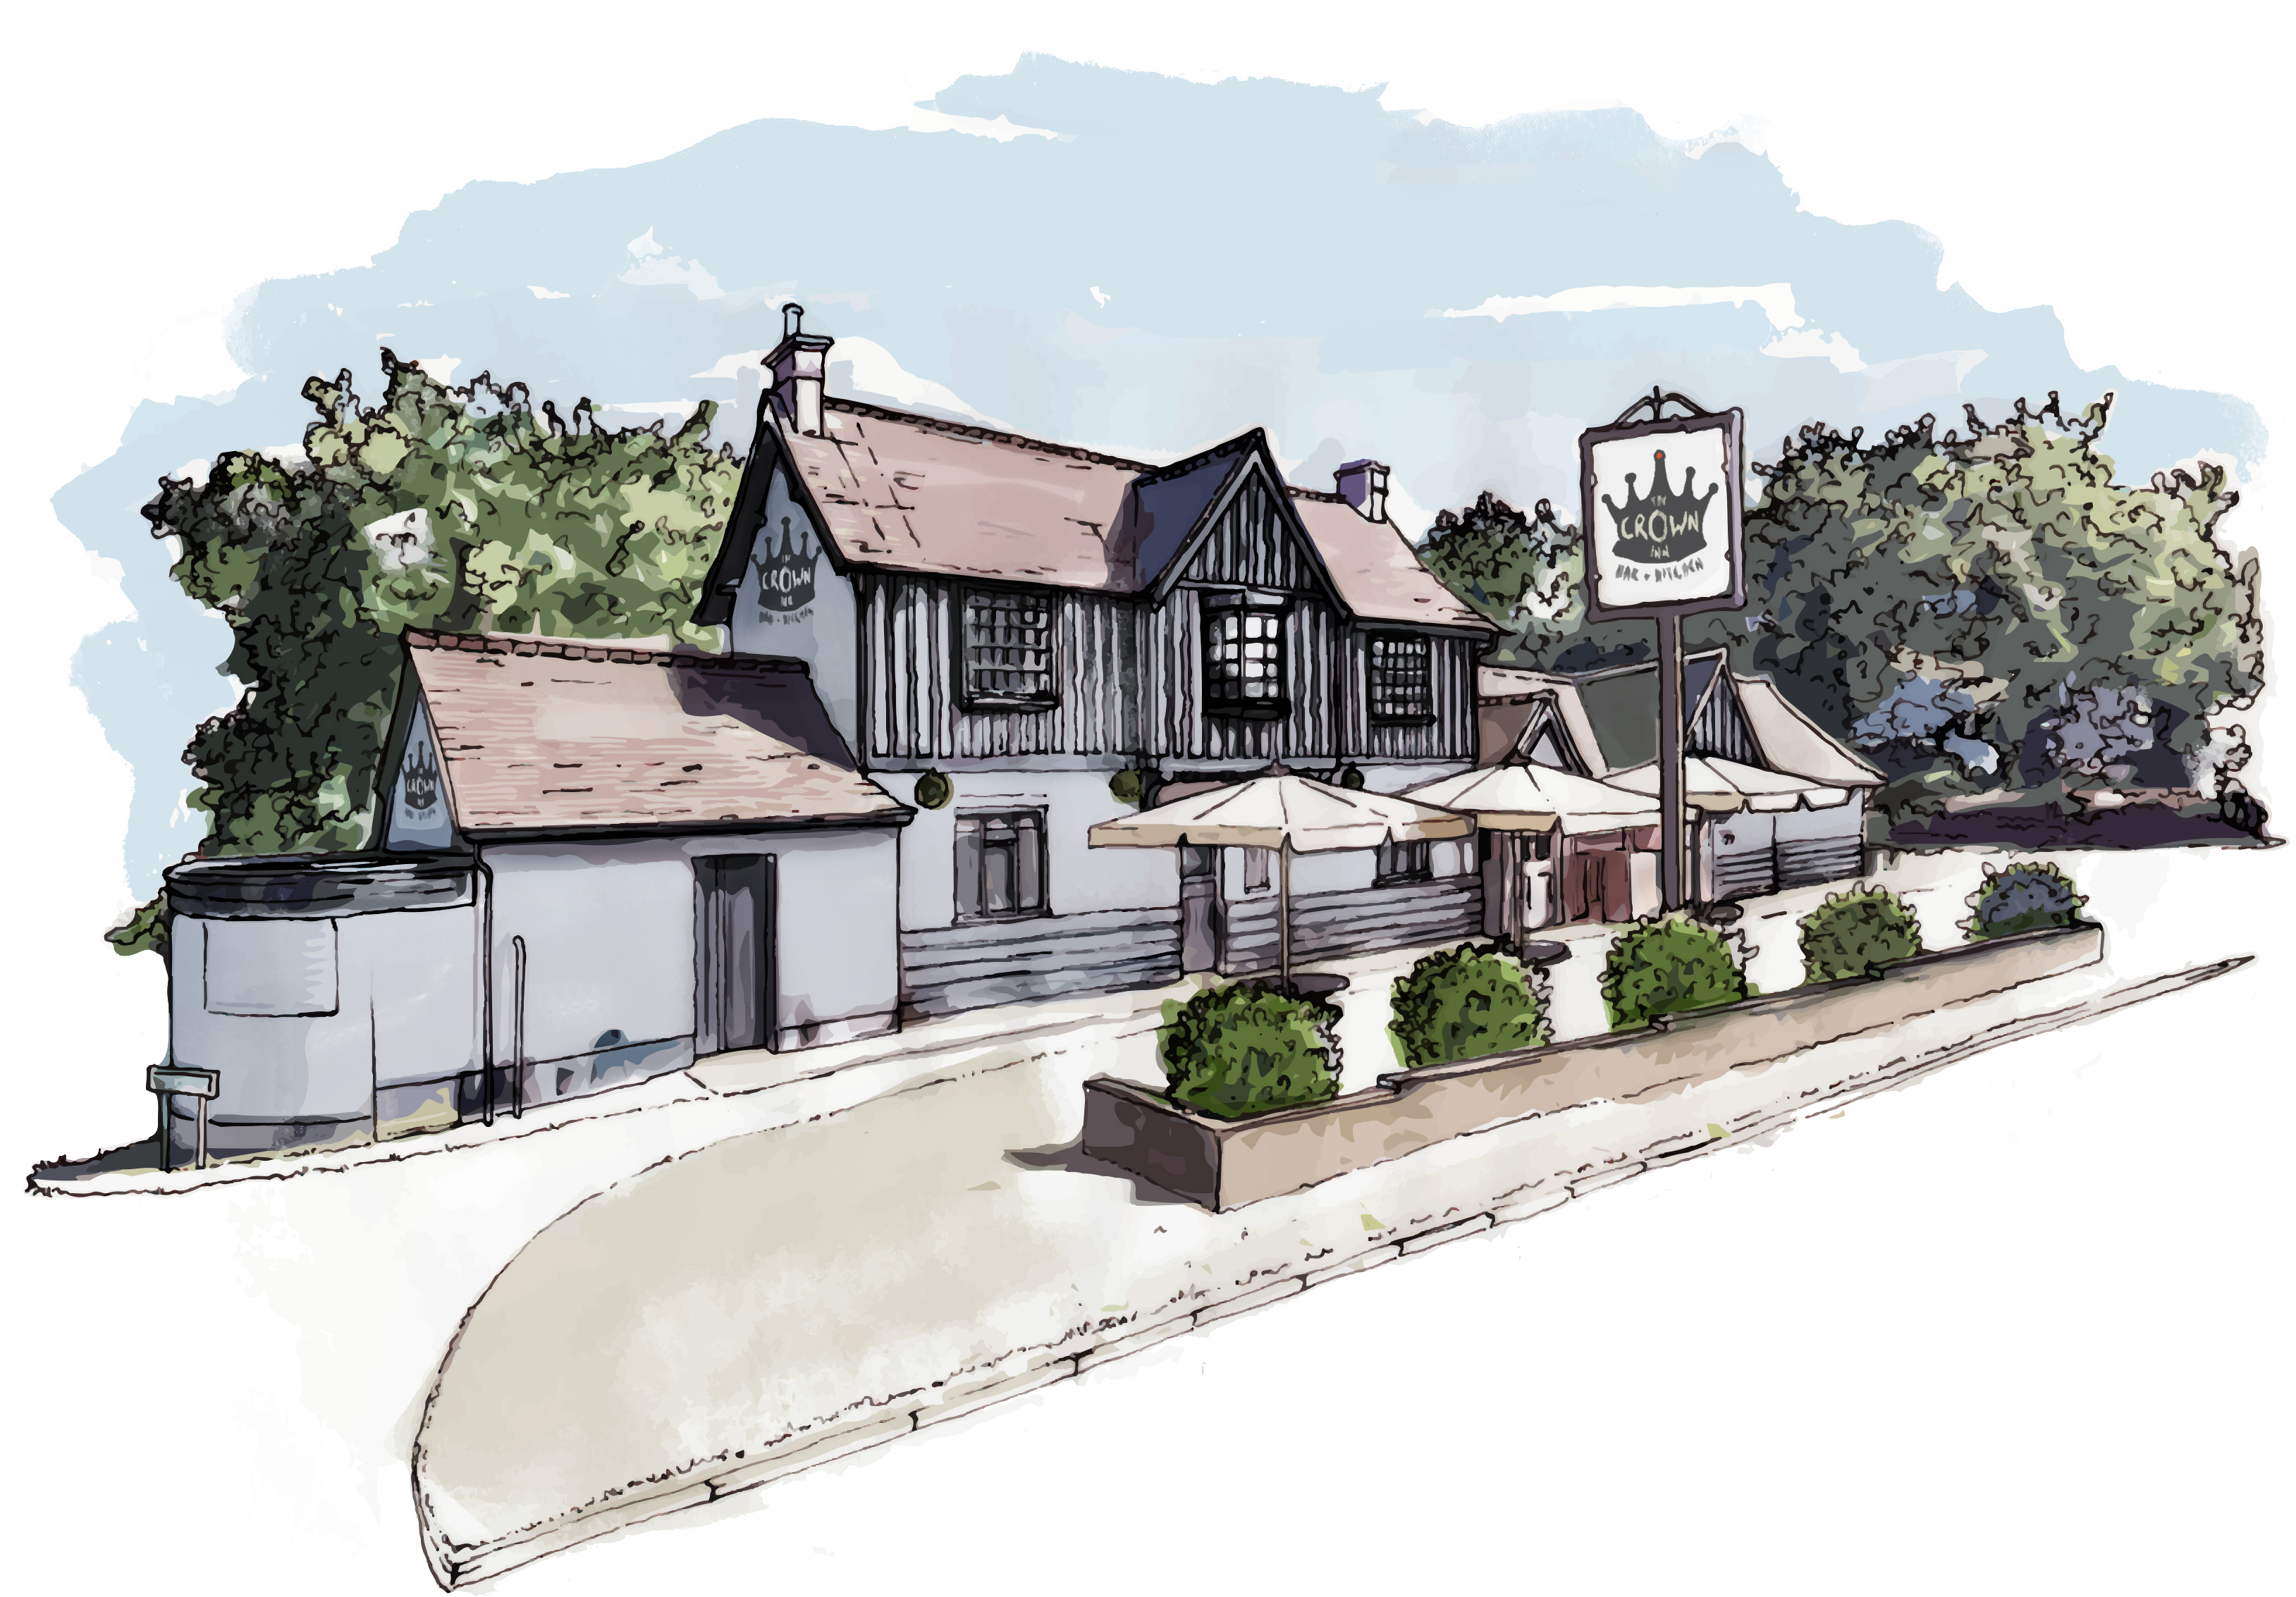 Crown Inn Illustration